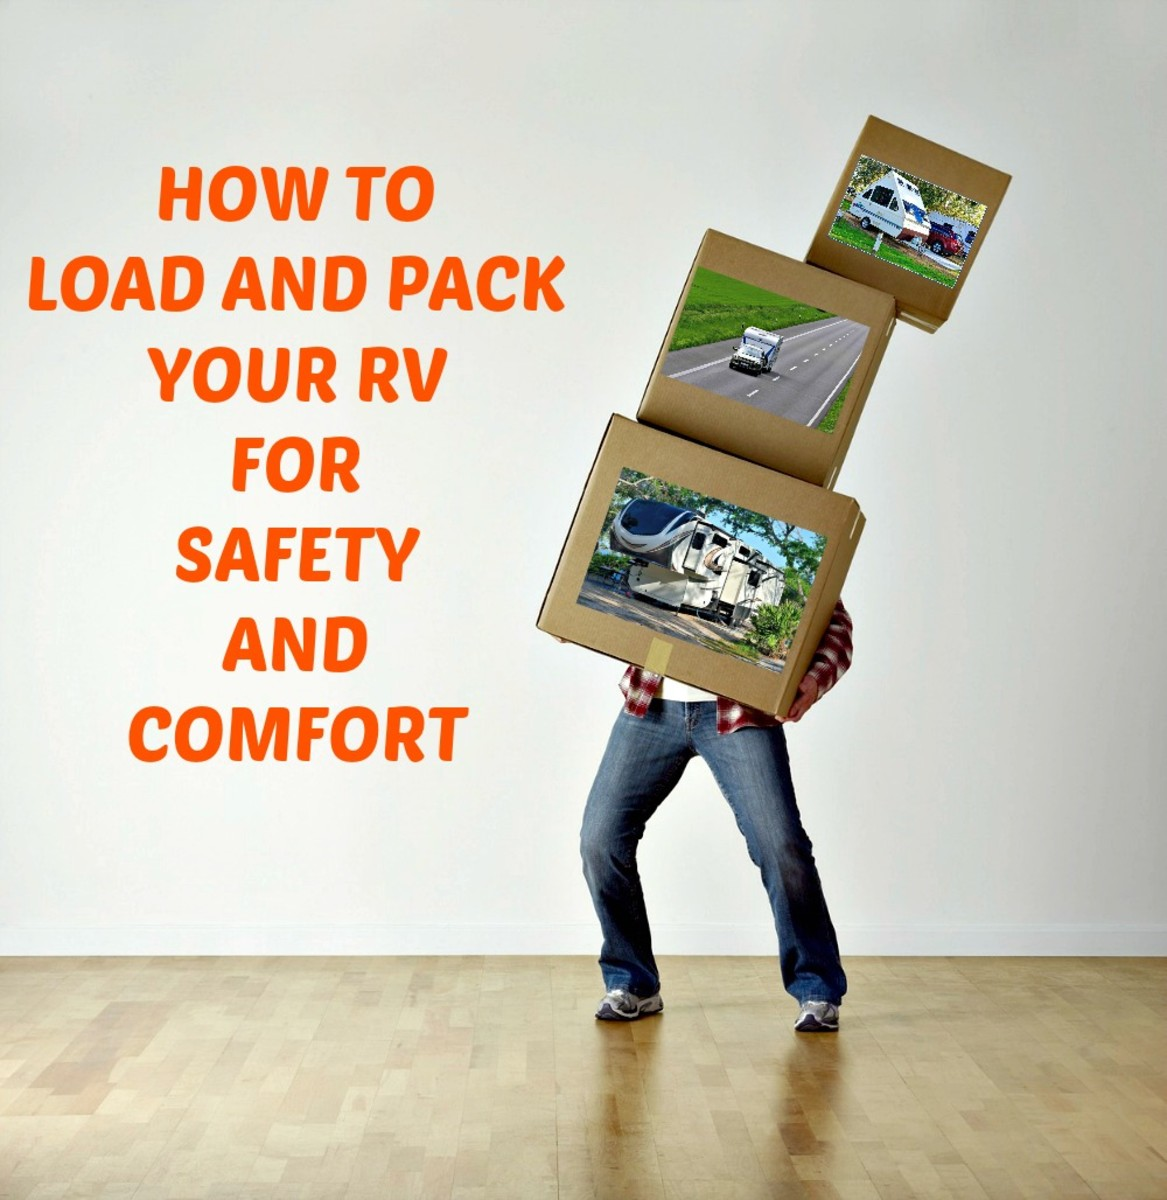 Tips for packing and loading an RV that will help you to avoid problems.